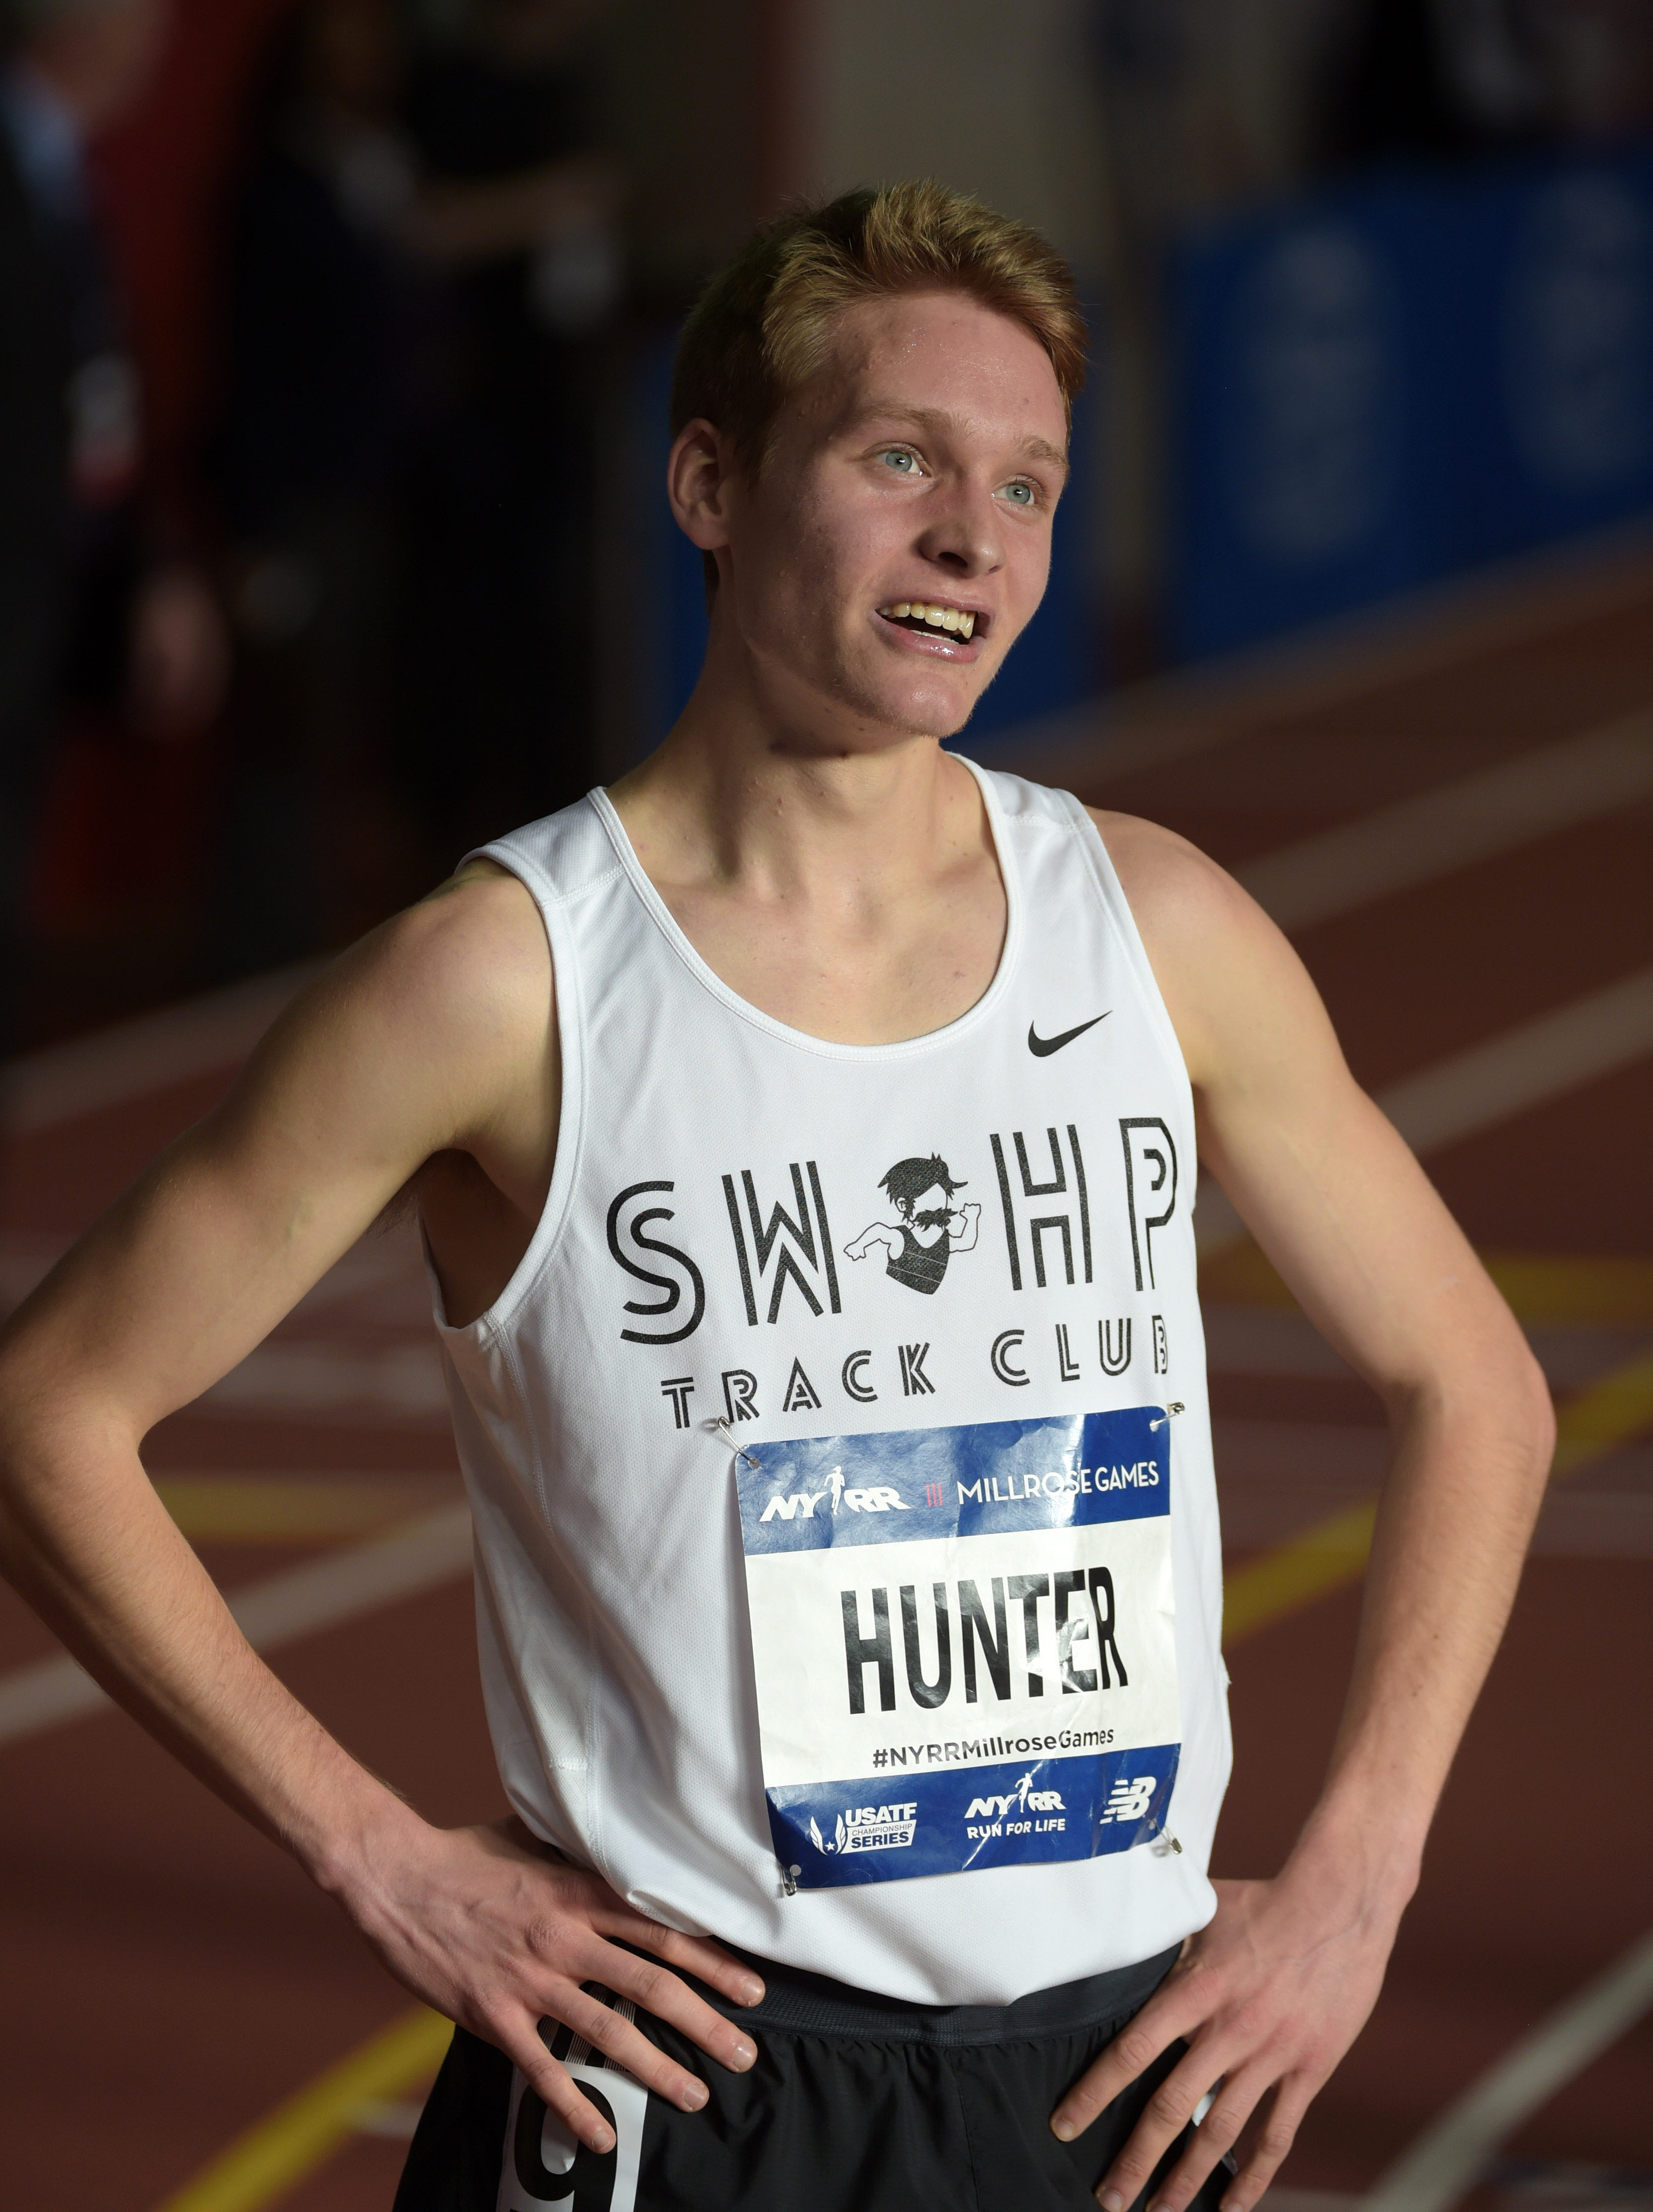 Drew Hunter reacts after setting a national high school indoor record 3:57.81 during the 109th Millrose Games (Photo: Kirby Lee, USA TODAY Sports)